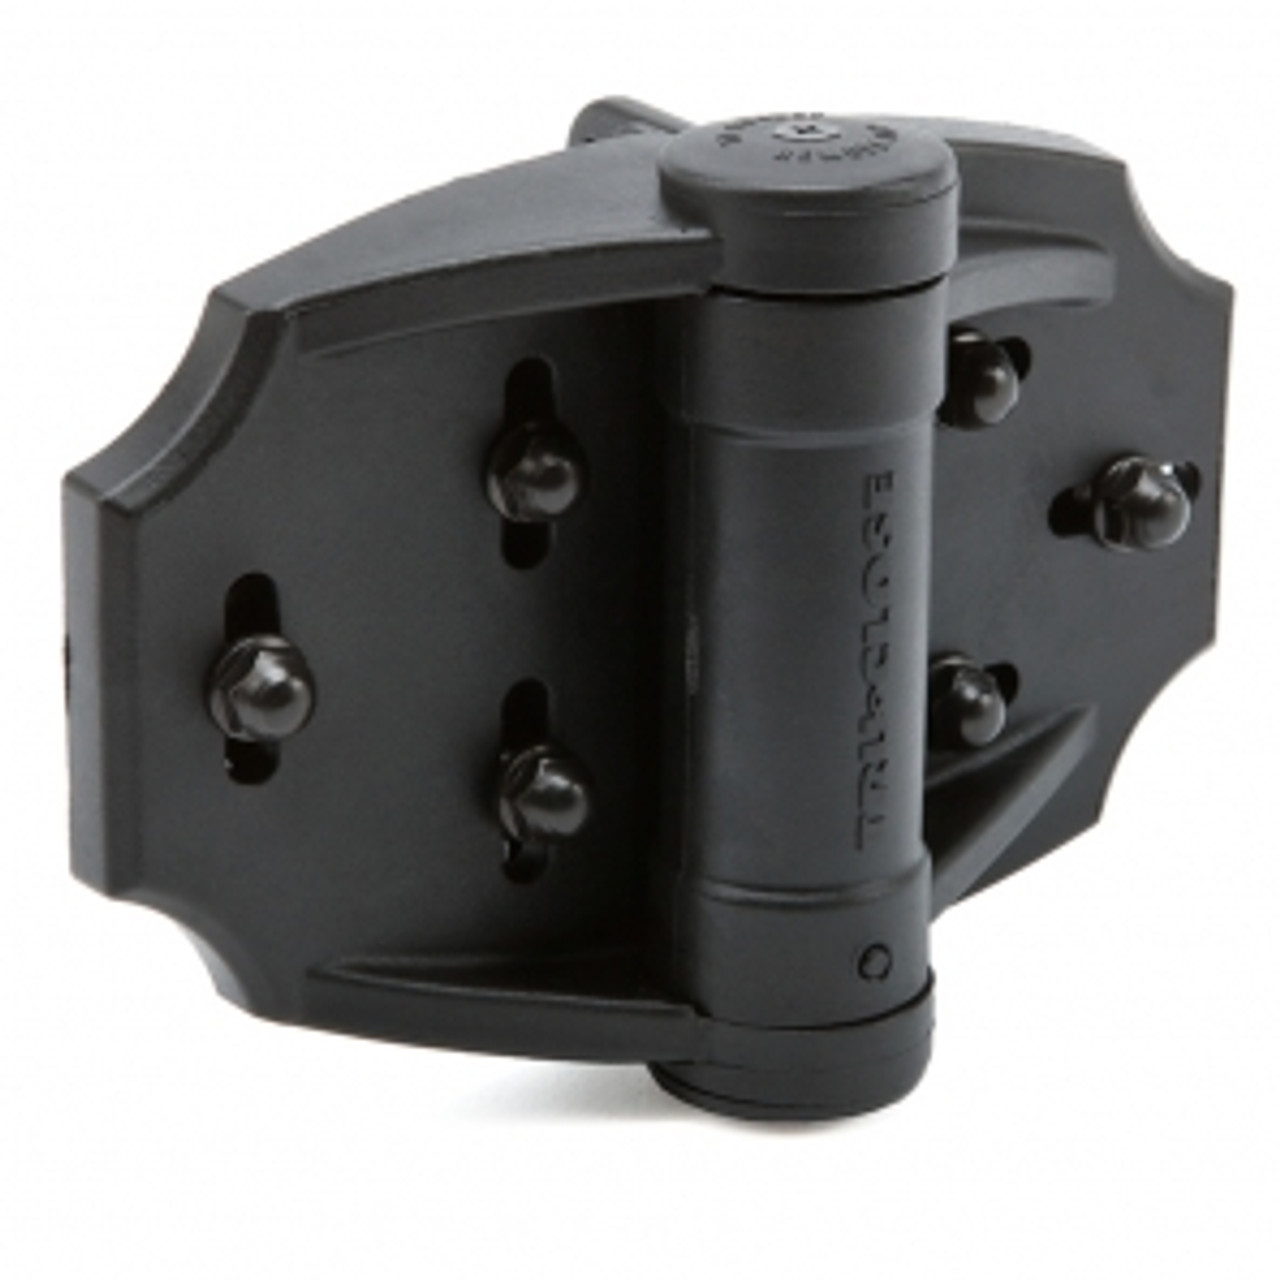 TruClose Heavy Duty Multi-Adjust Gravity Gate Hinge from D&D Technologies